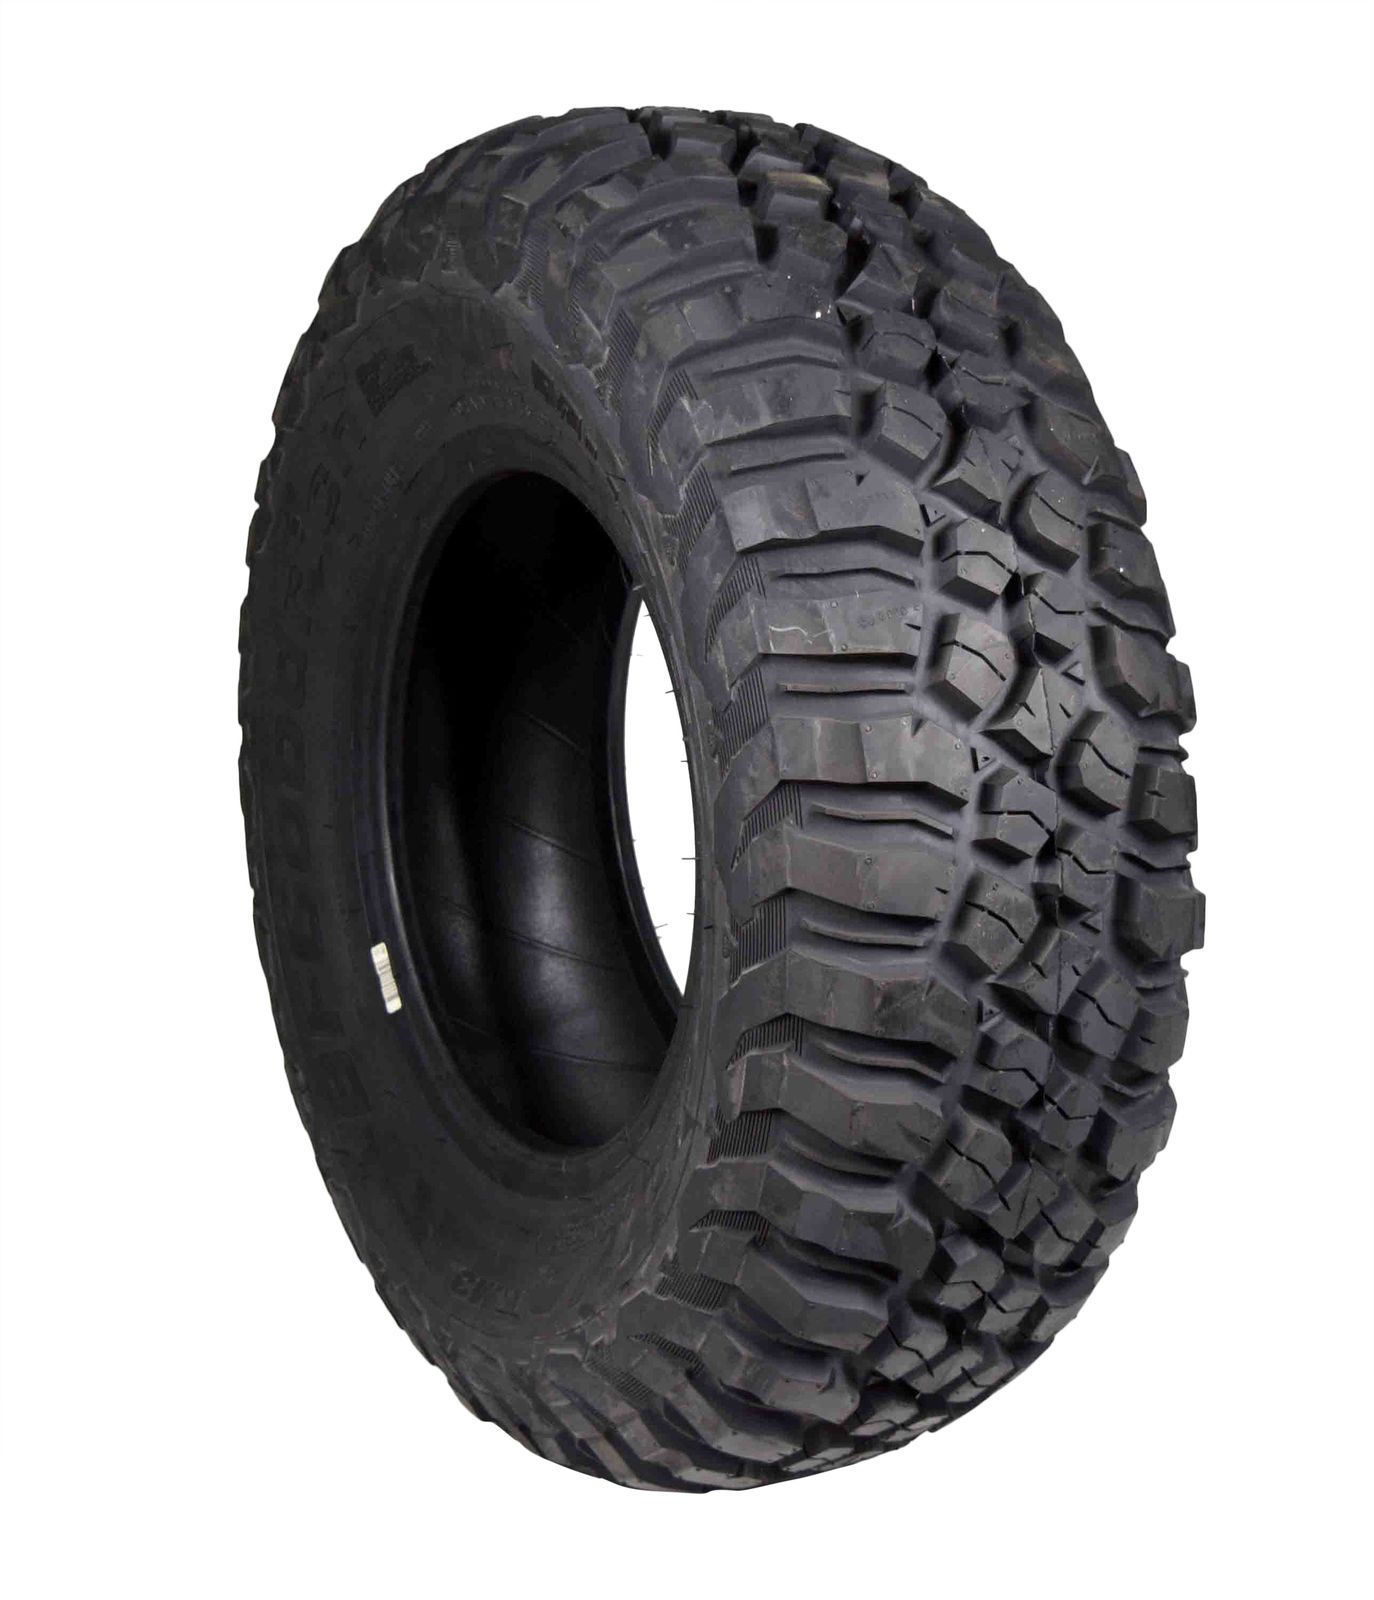 BFGoodrich-28x10R14-Mud-Terrain-KM3-All-Terrain-UTV-Tire-Single-Tire-image-1